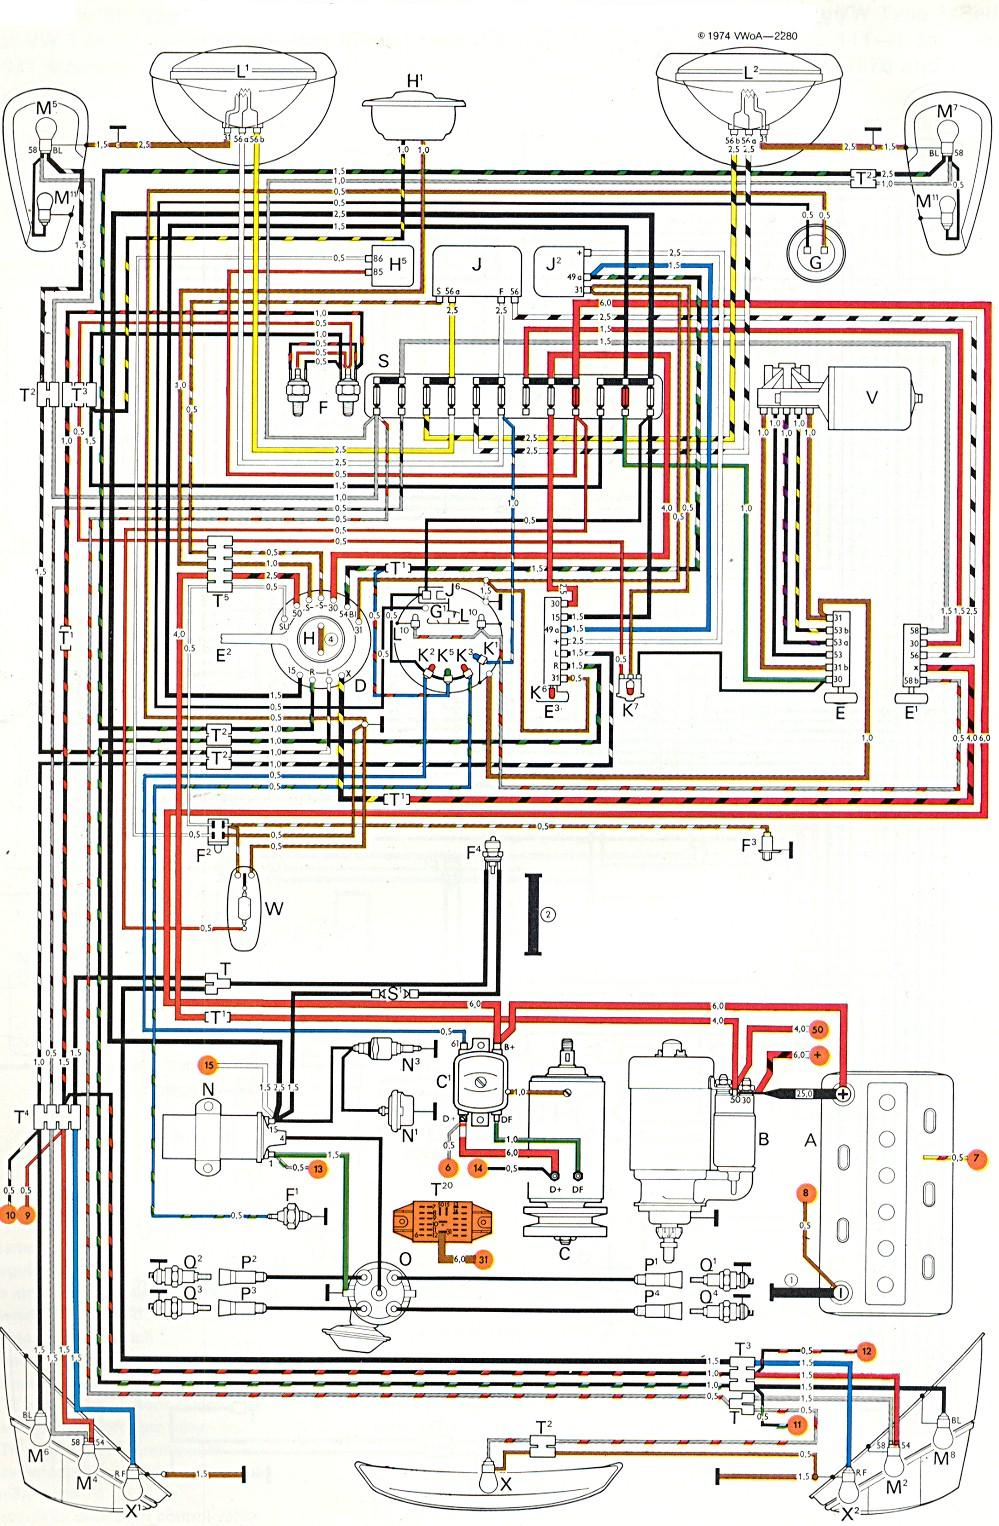 74 Vw Bus Wiring Diagram Relays - Wiring Diagram Replace way-digital -  way-digital.miramontiseo.it | 74 Vw Bus Wiring Diagram Relays |  | way-digital.miramontiseo.it